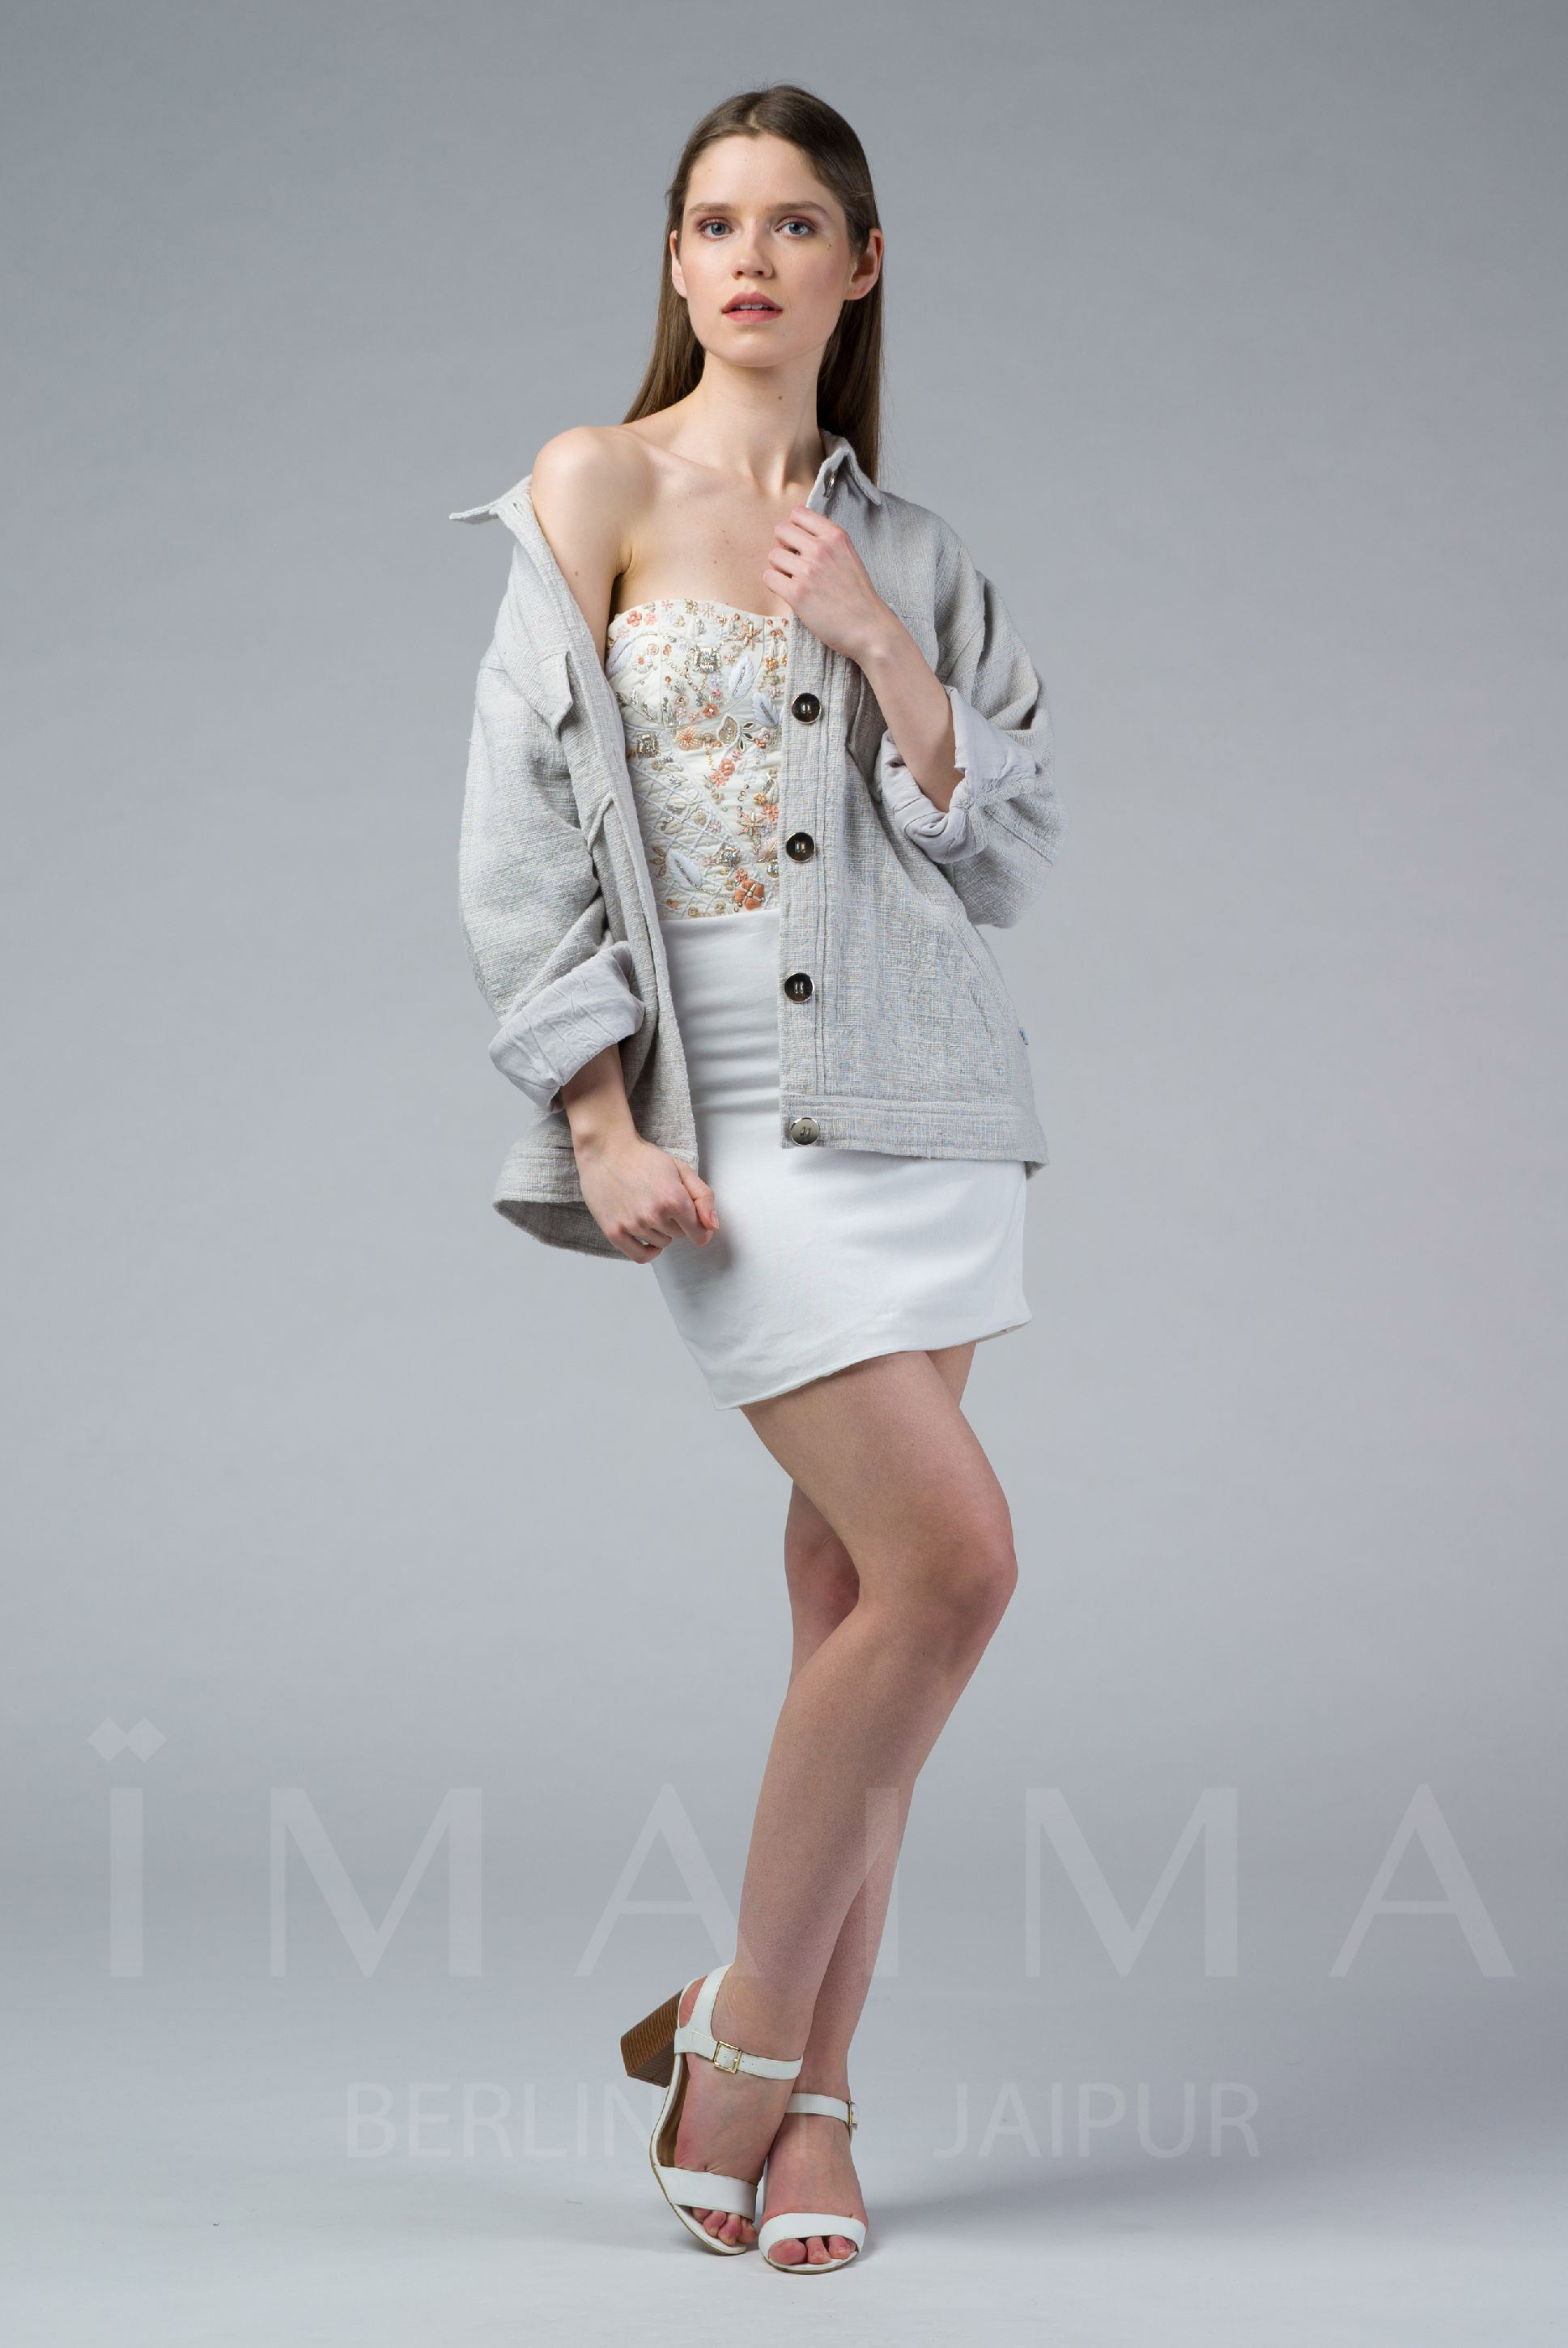 Hand Embroidered Jackets, Embroidered Jackets, Buy Hand Woven Jackets and Online Embroidered Womens Jack